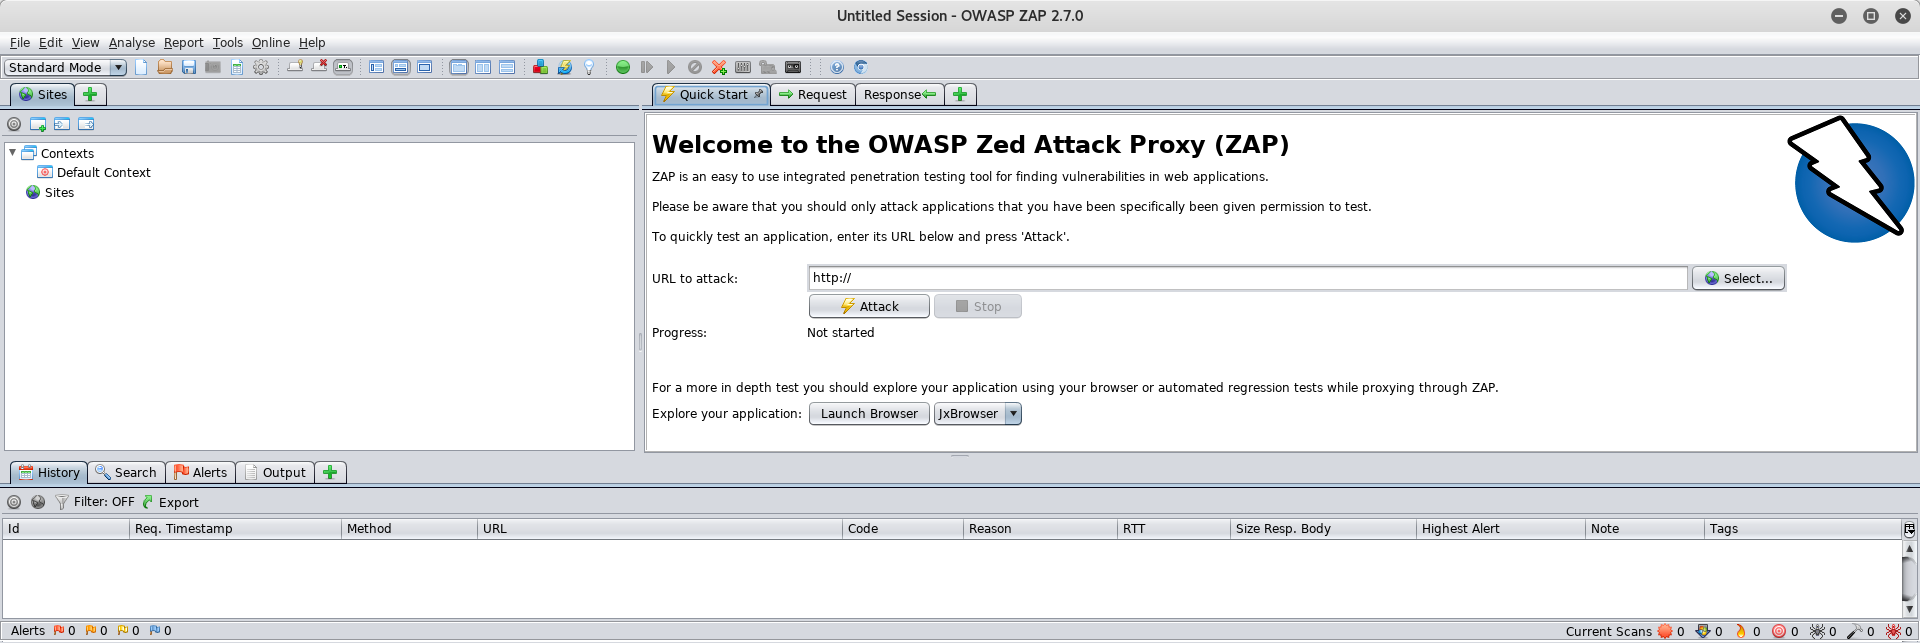 OWASP ZAP - Network Vulnerability Assessment [Book]